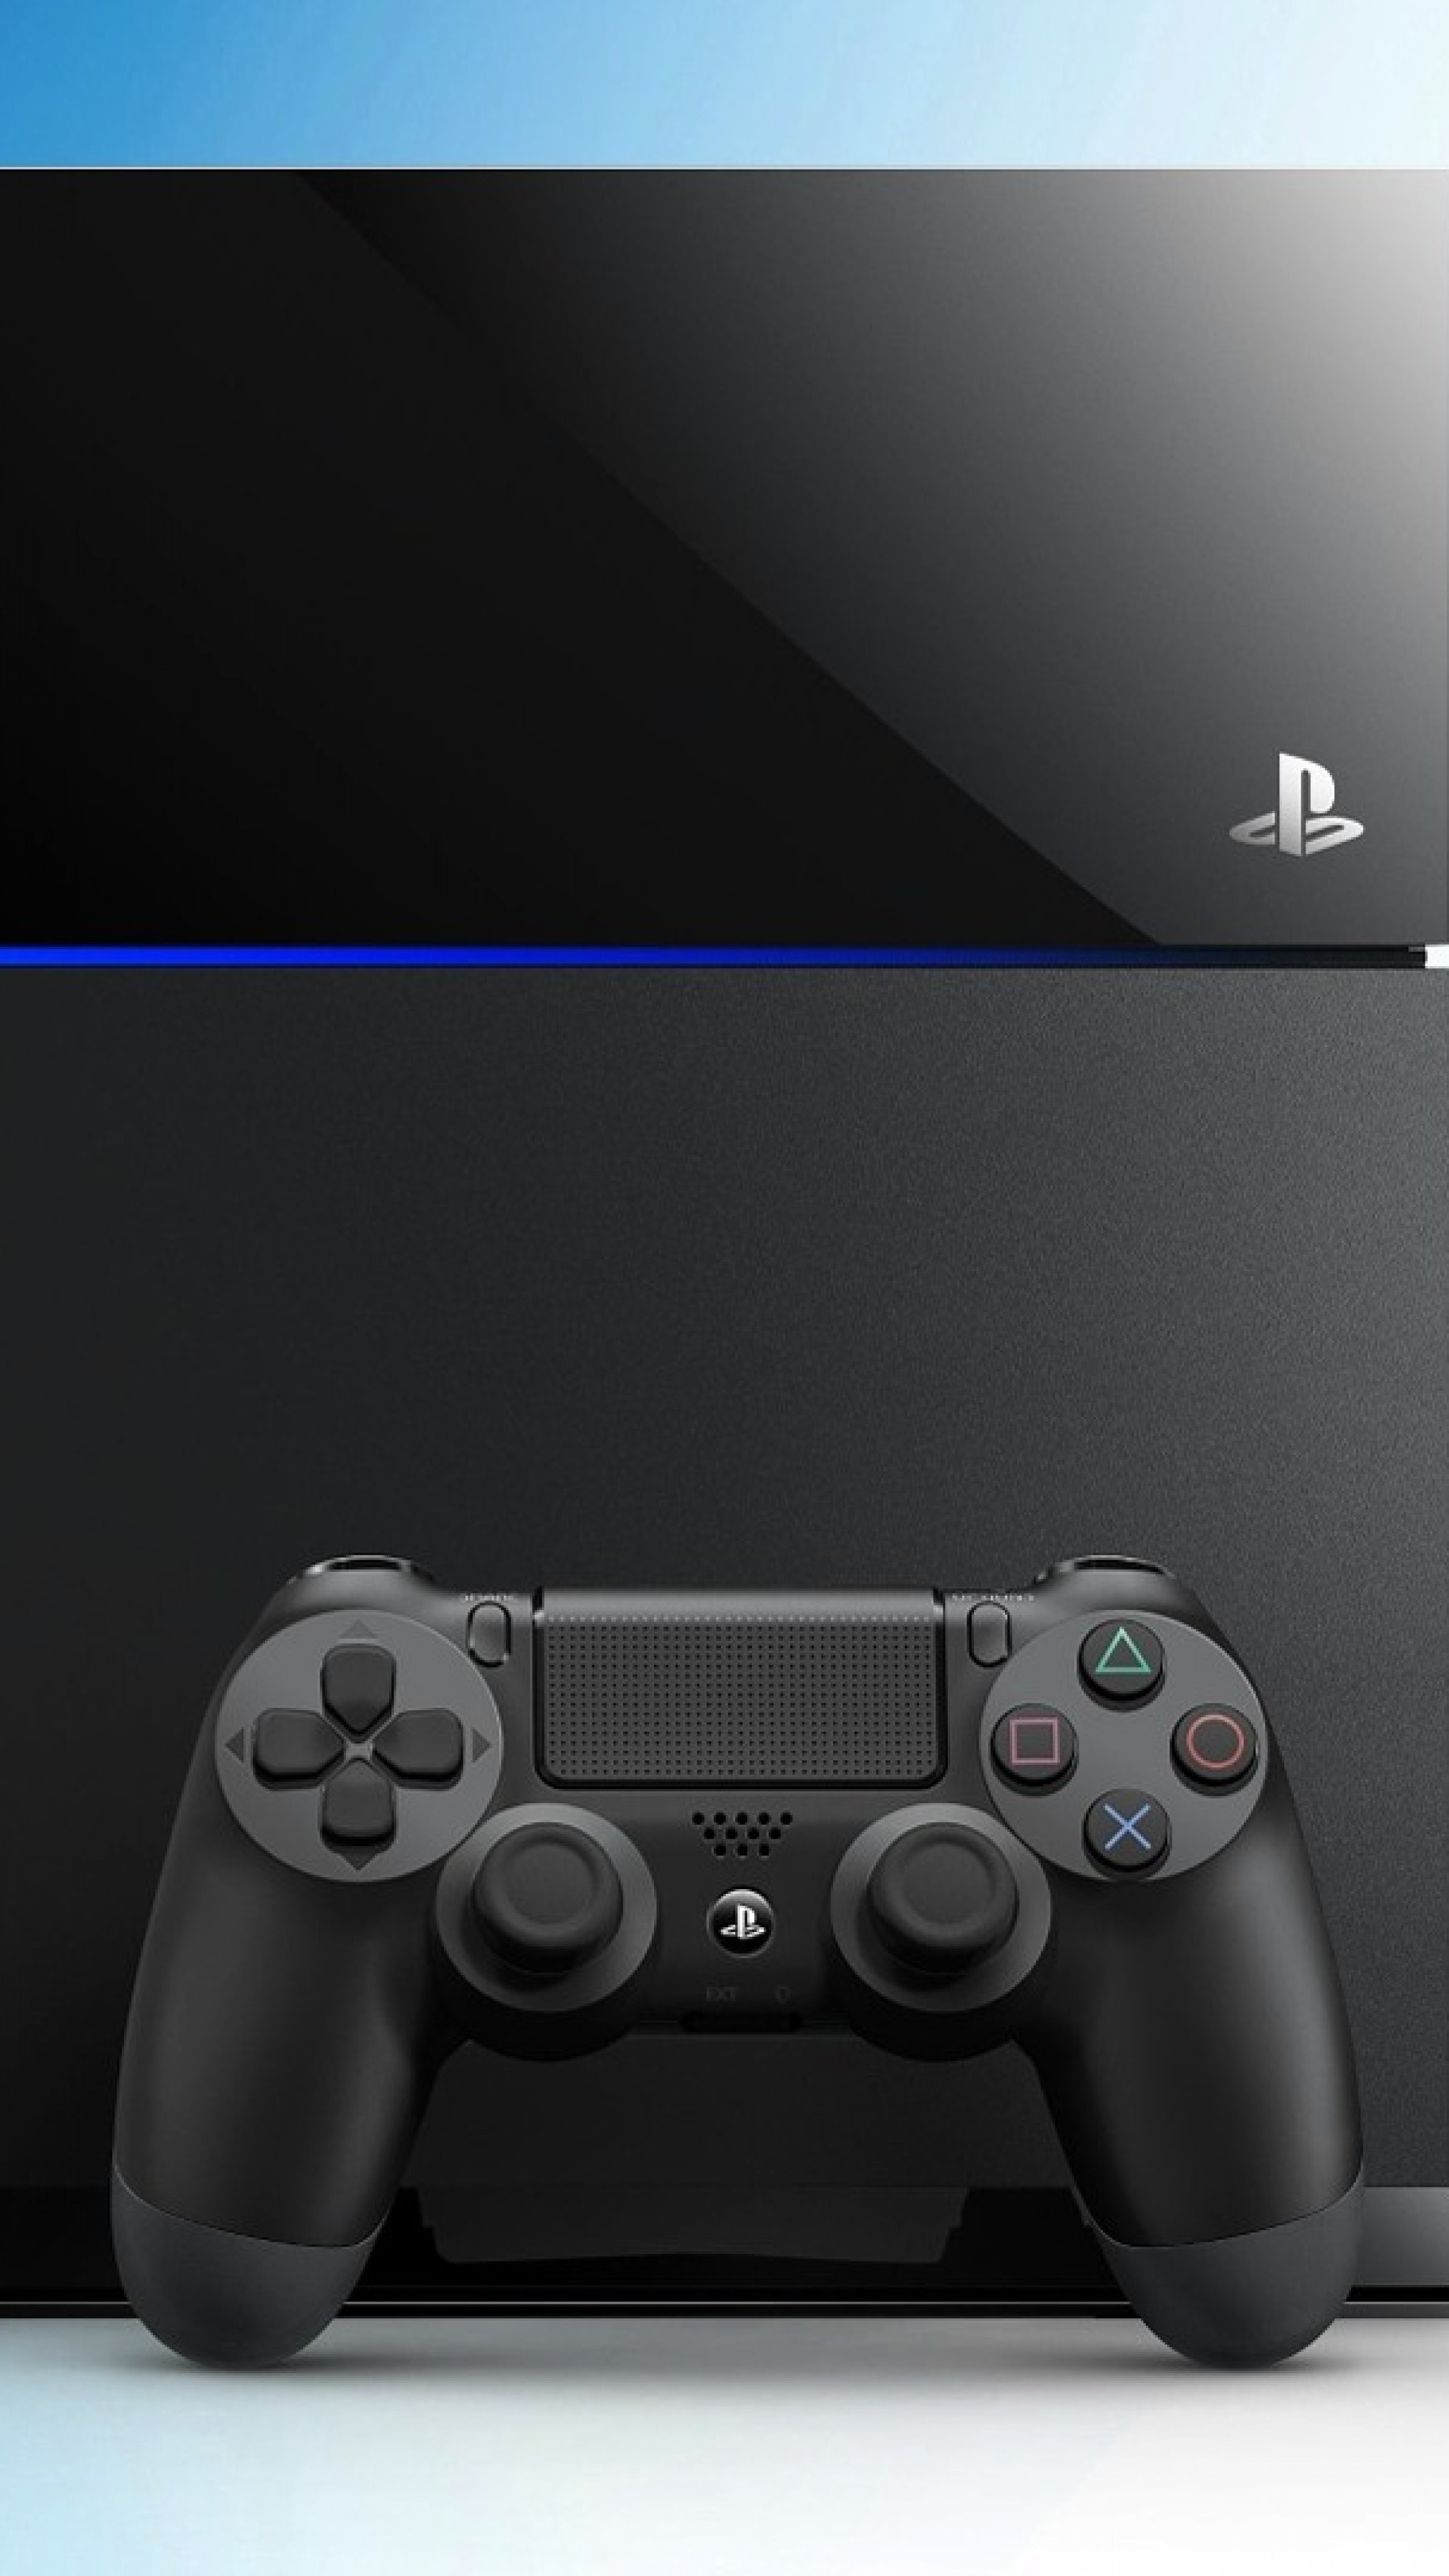 Wallpaper playstation 4, console, controller, ps4